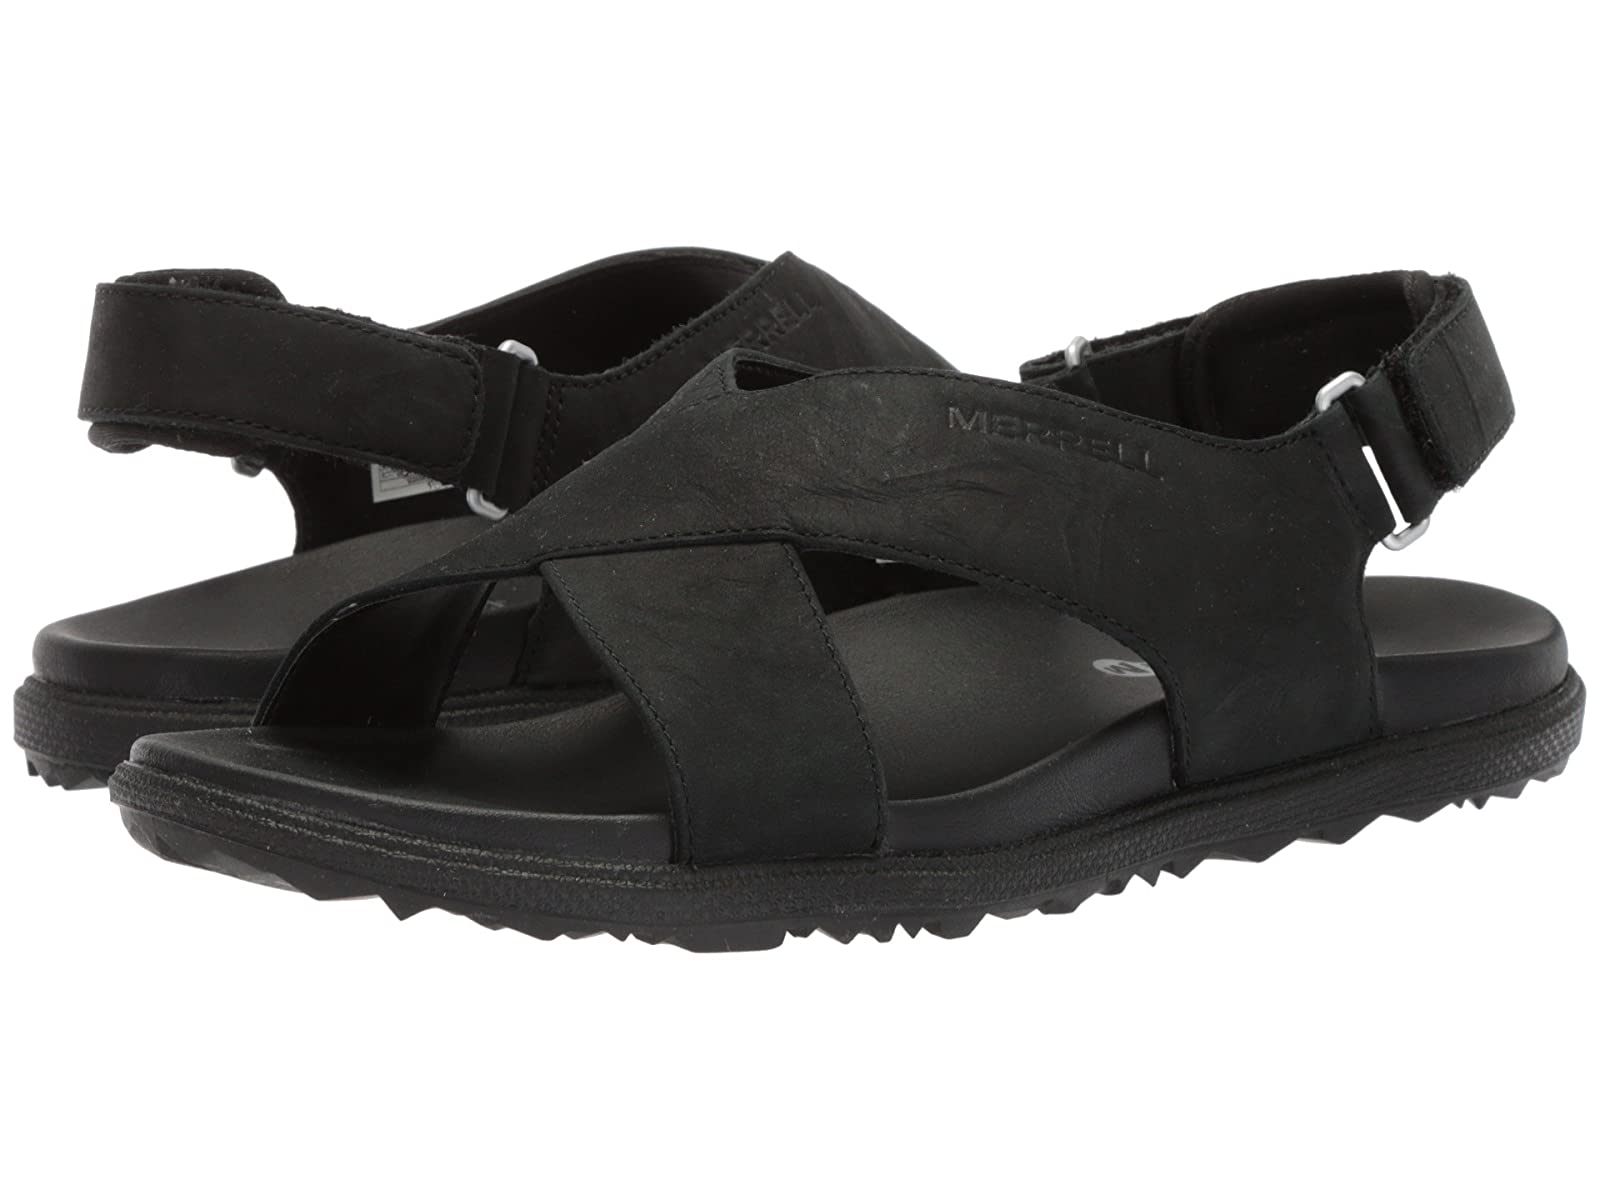 Merrell Around Town Sunvue StrapAtmospheric grades have affordable shoes